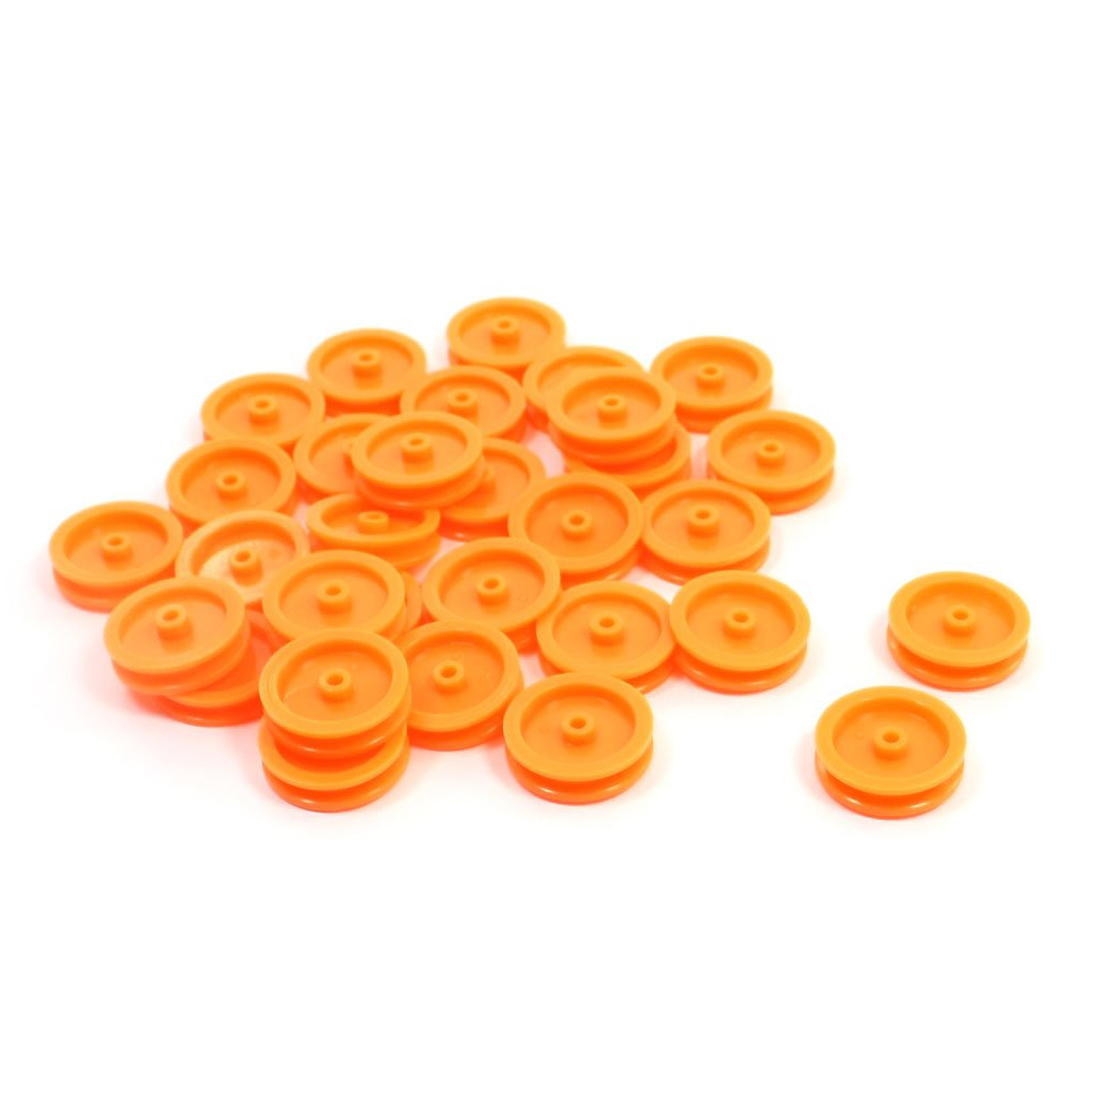 WOTT 30 Pcs 2mm Hole Orange Plastic Belt <font><b>Pulley</b></font> for DIY RC Toy <font><b>Car</b></font> Airplane image